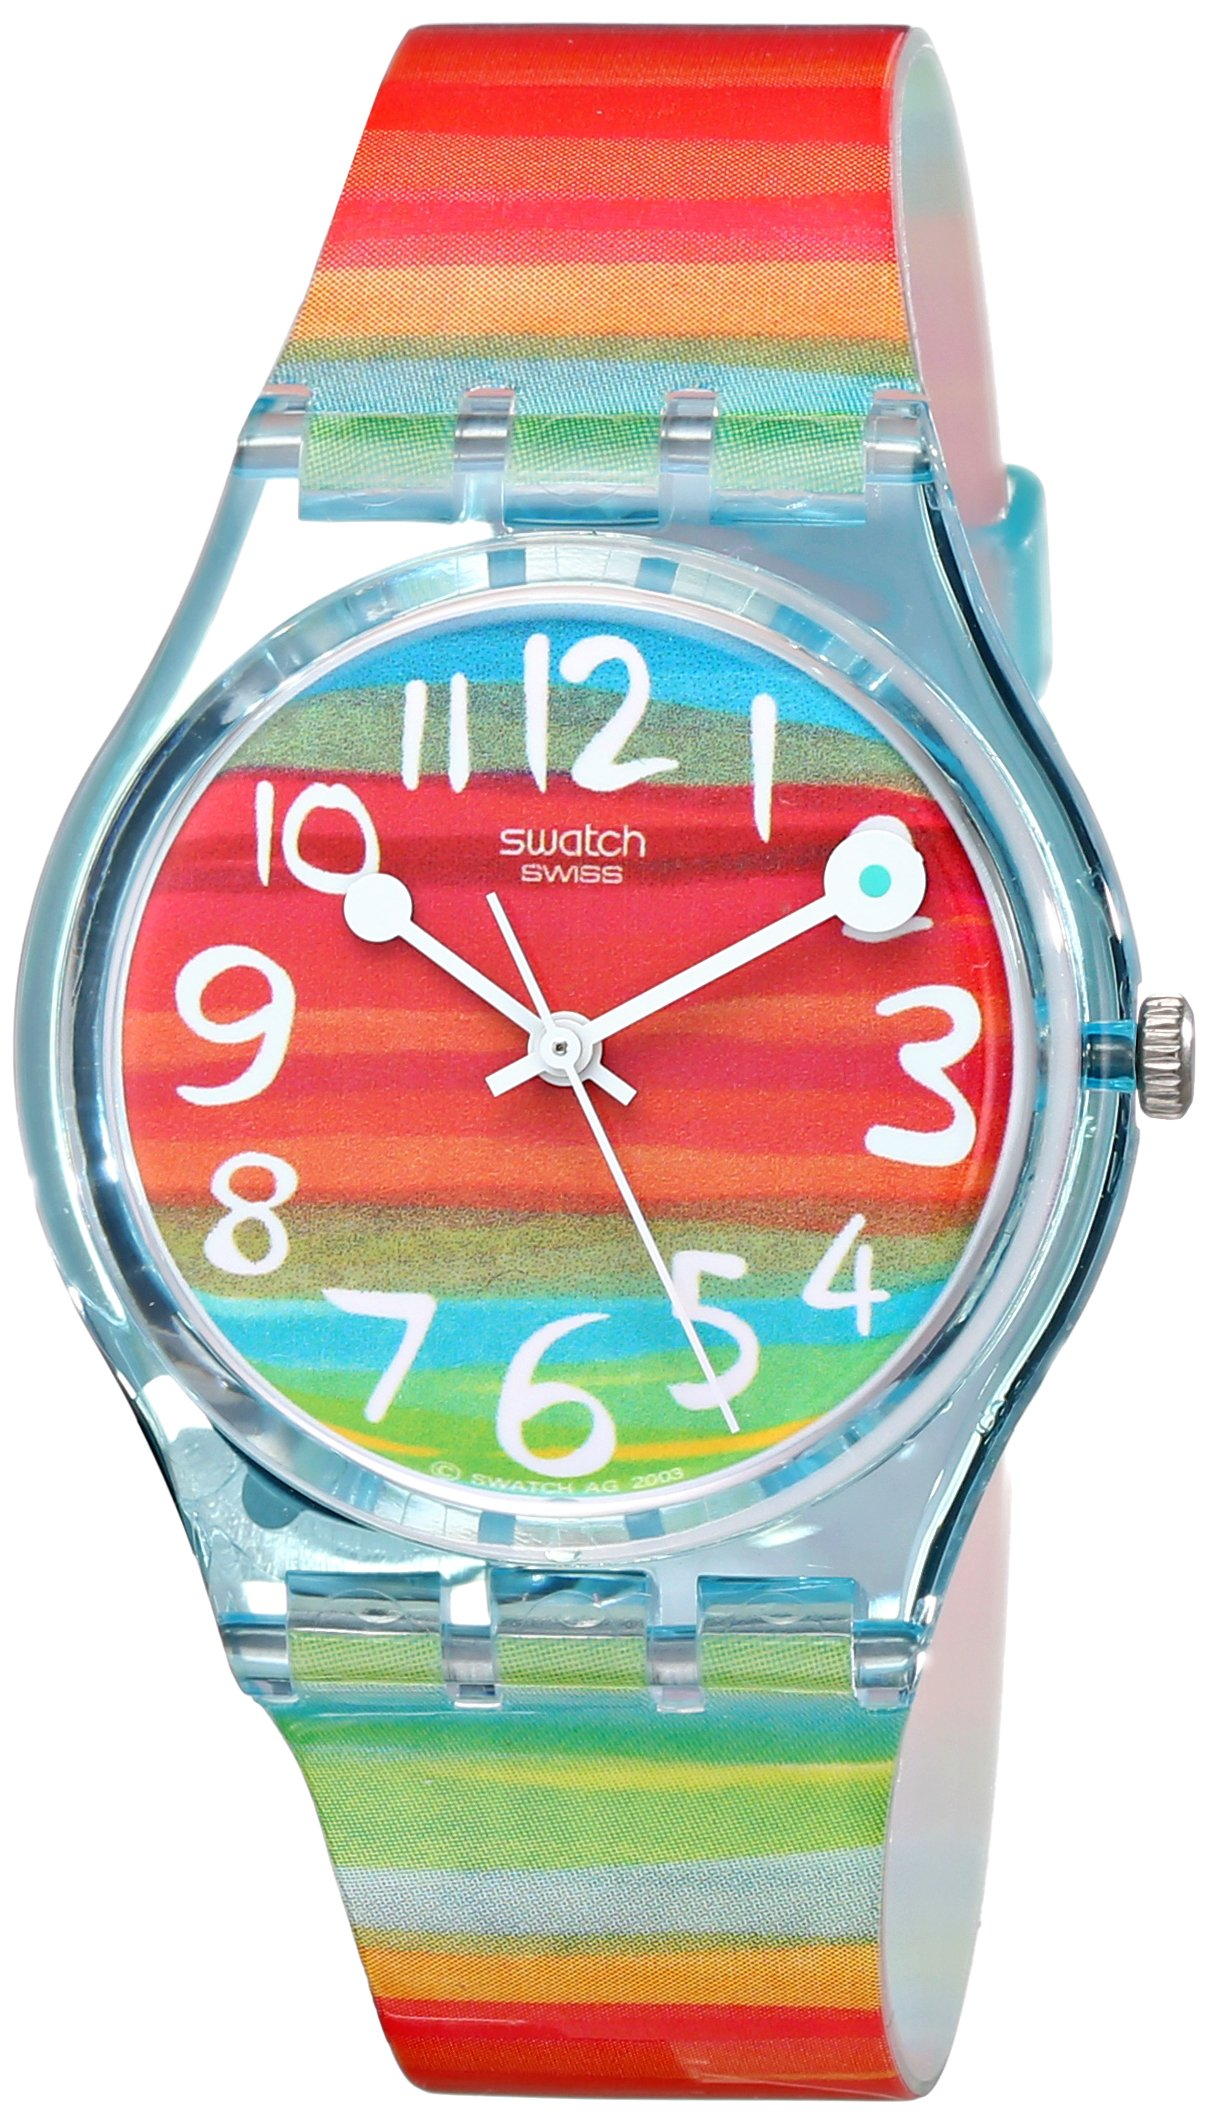 Genskie_chasy_Swatch (4)